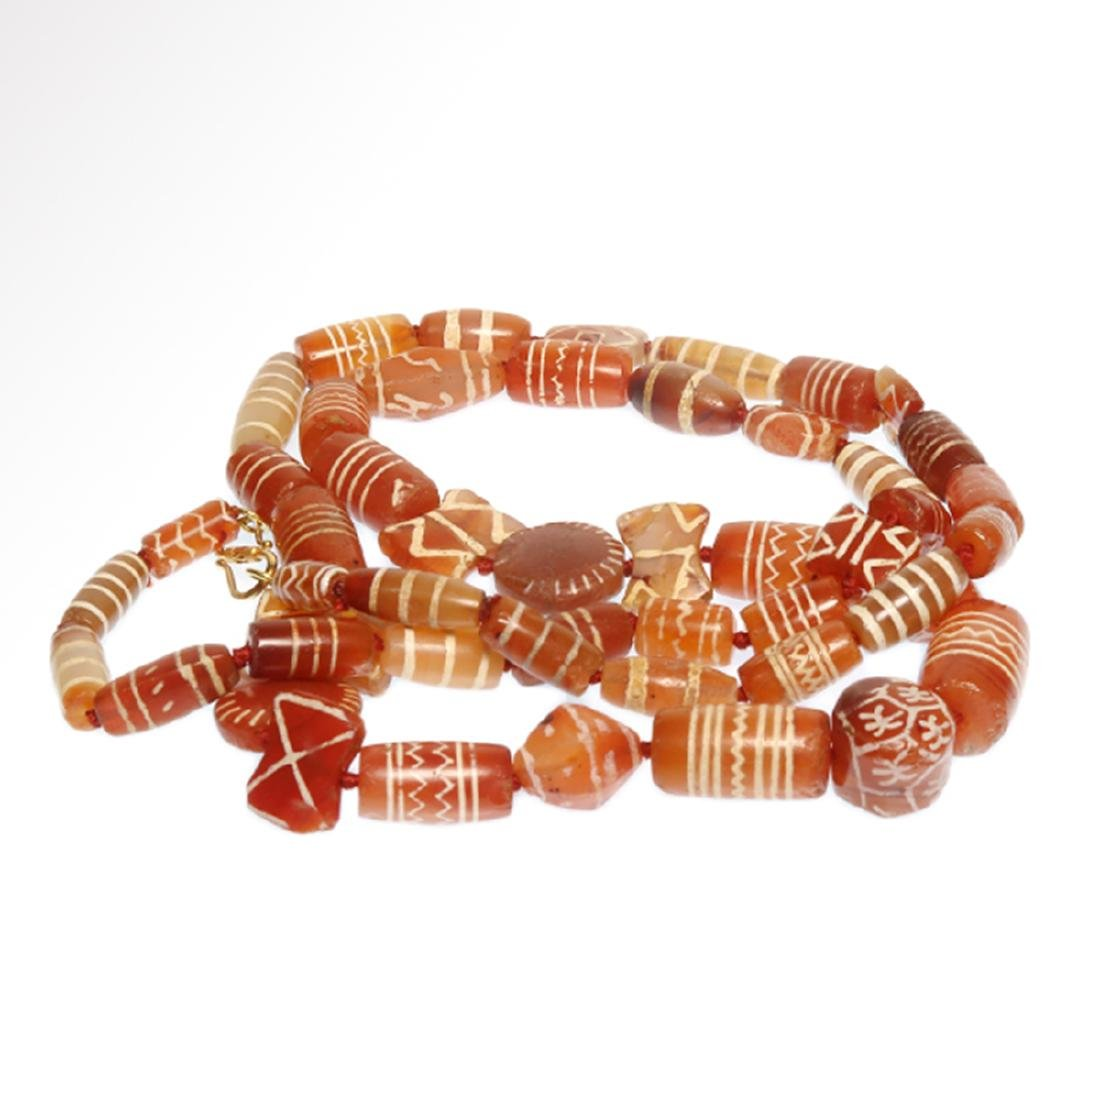 Cornelian Etched Beads Necklace, Near Eastern, 1st